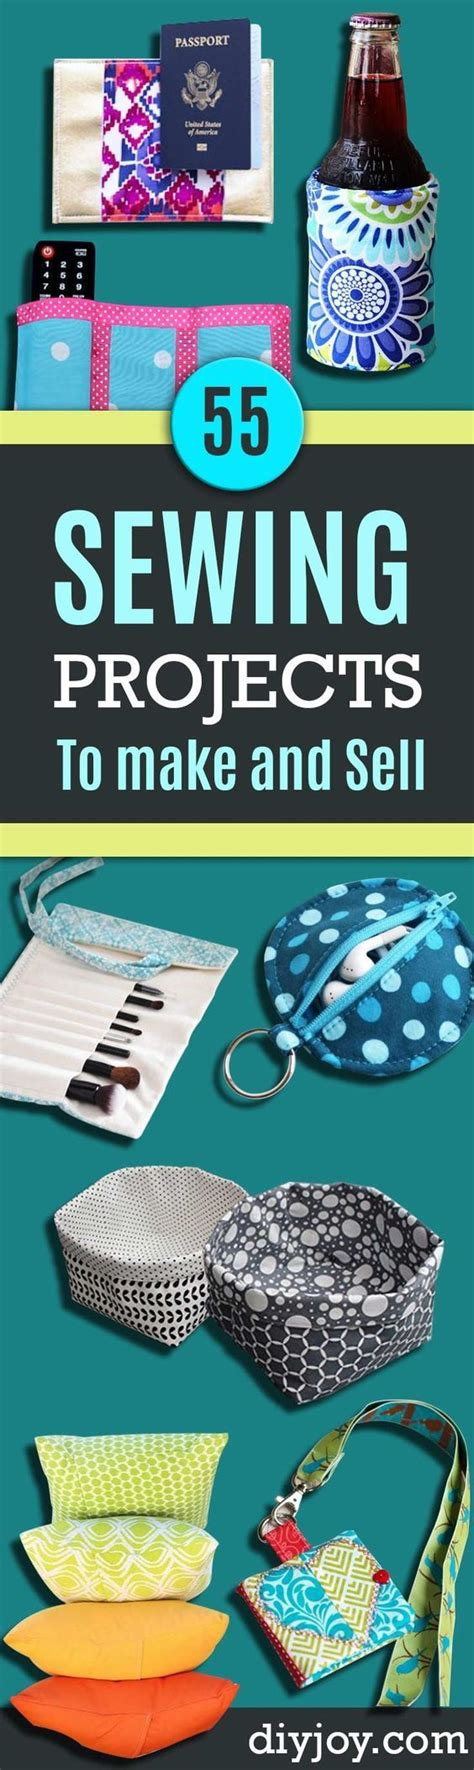 easy crafts for to make and sell 7 beyond easy crafts you can make and sell sewing